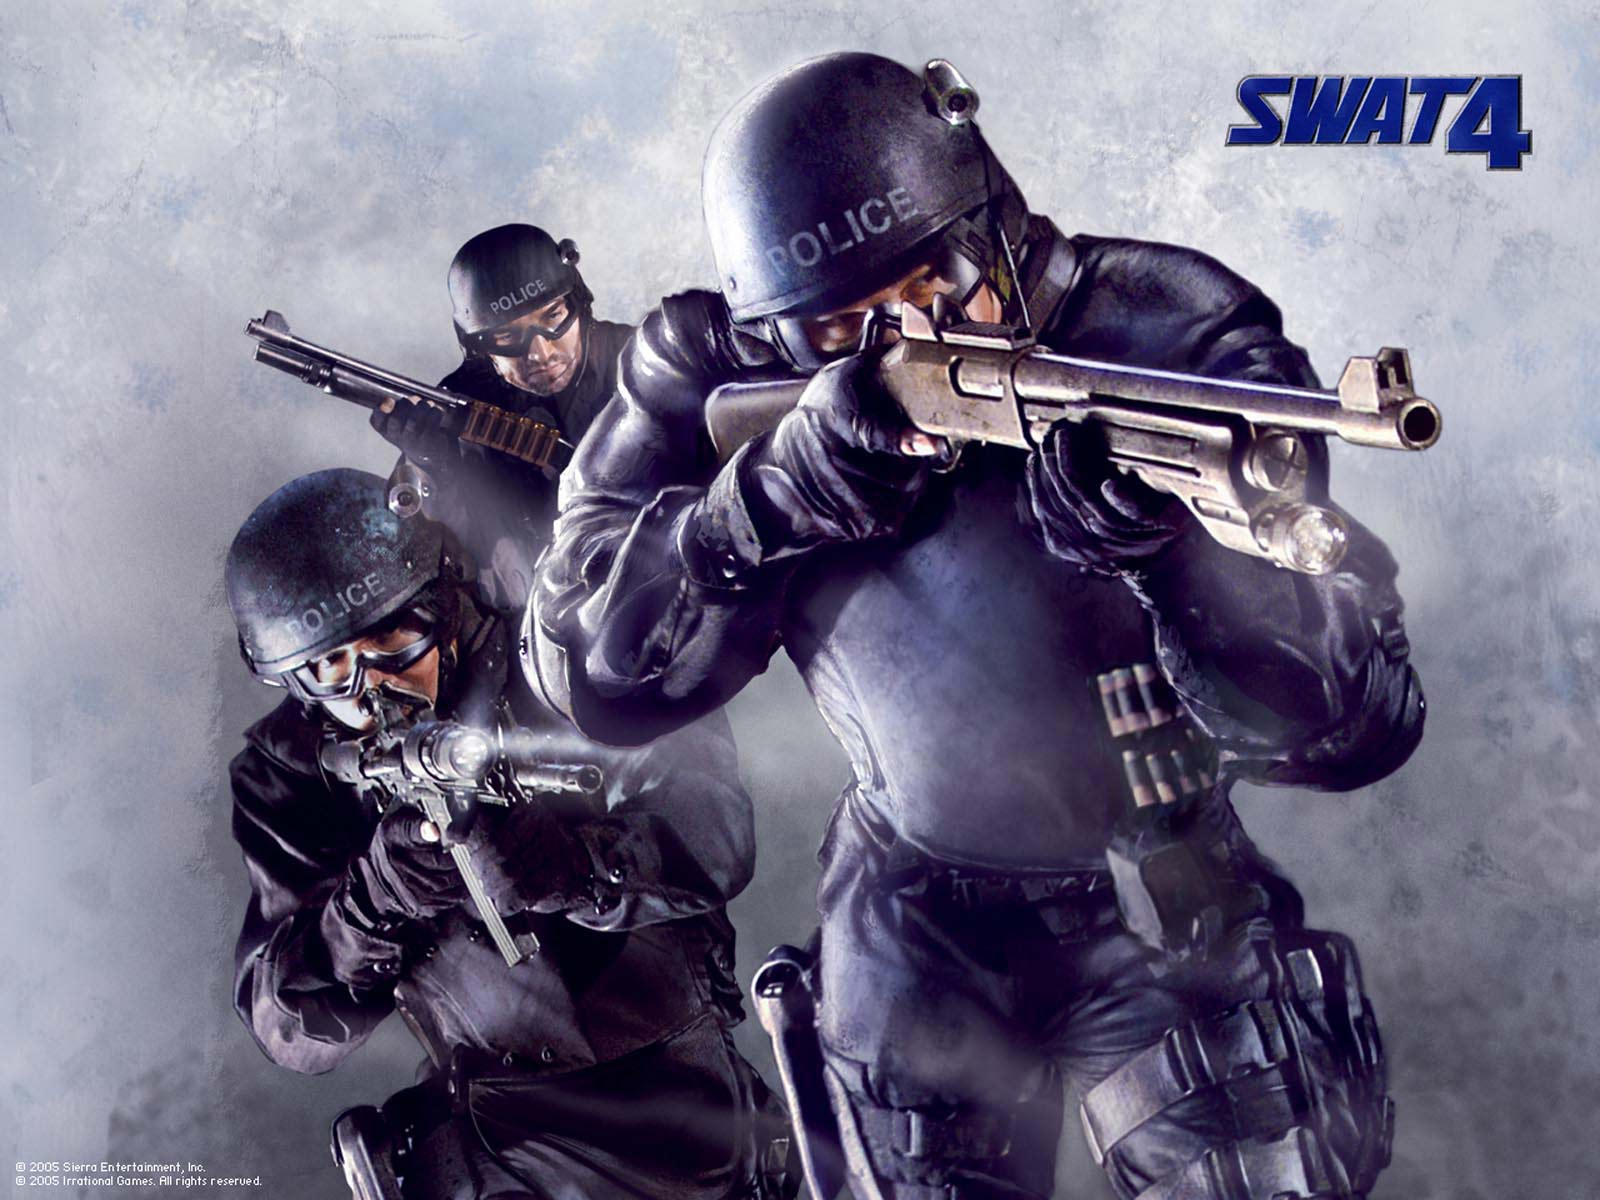 The Sierra Chest Swat 4 Wallpapers Themes